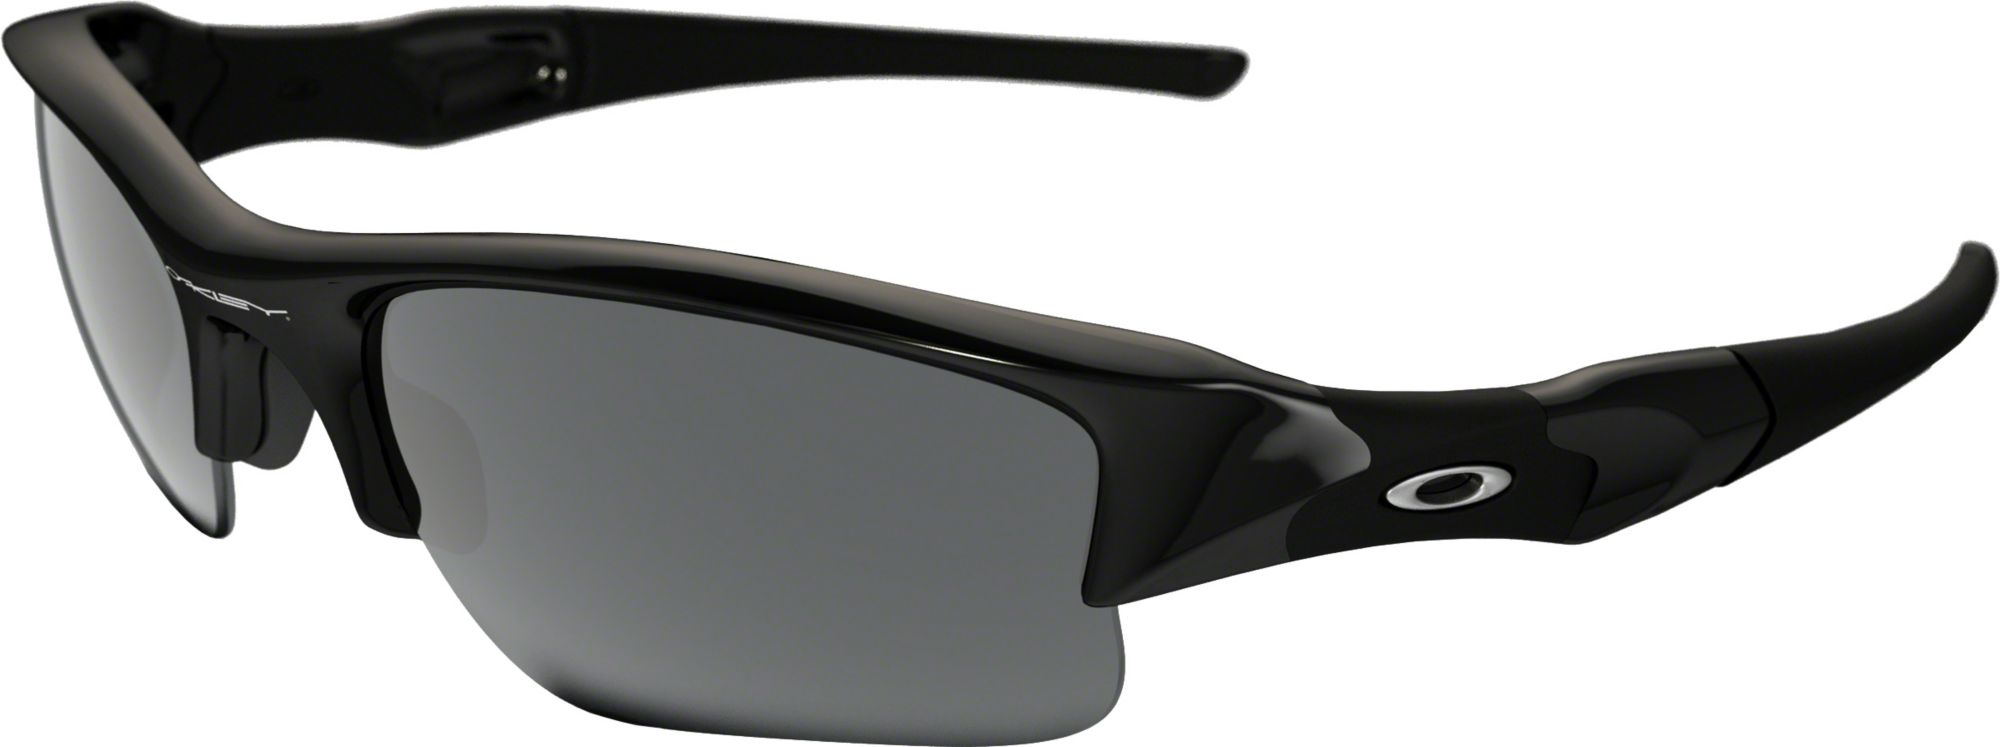 white and black oakley sunglasses 6f93  noImageFound ???